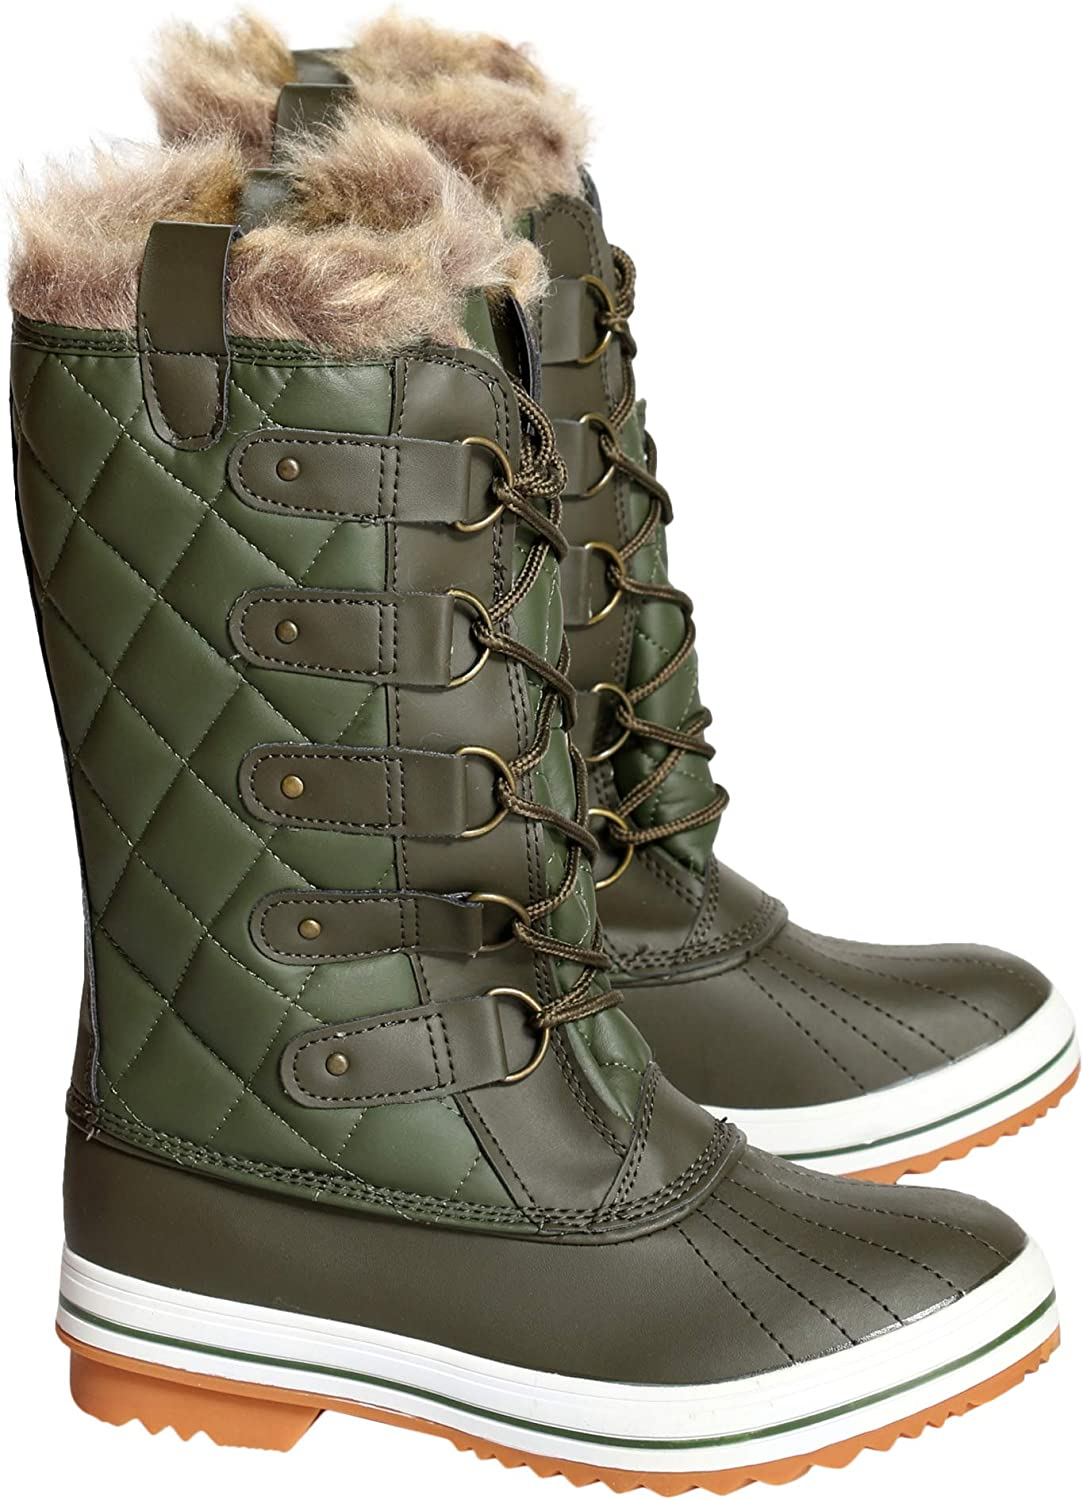 Nature Breeze Womens Casual Round Toe Water Resistant Mid Calf Snow Boot - Olive